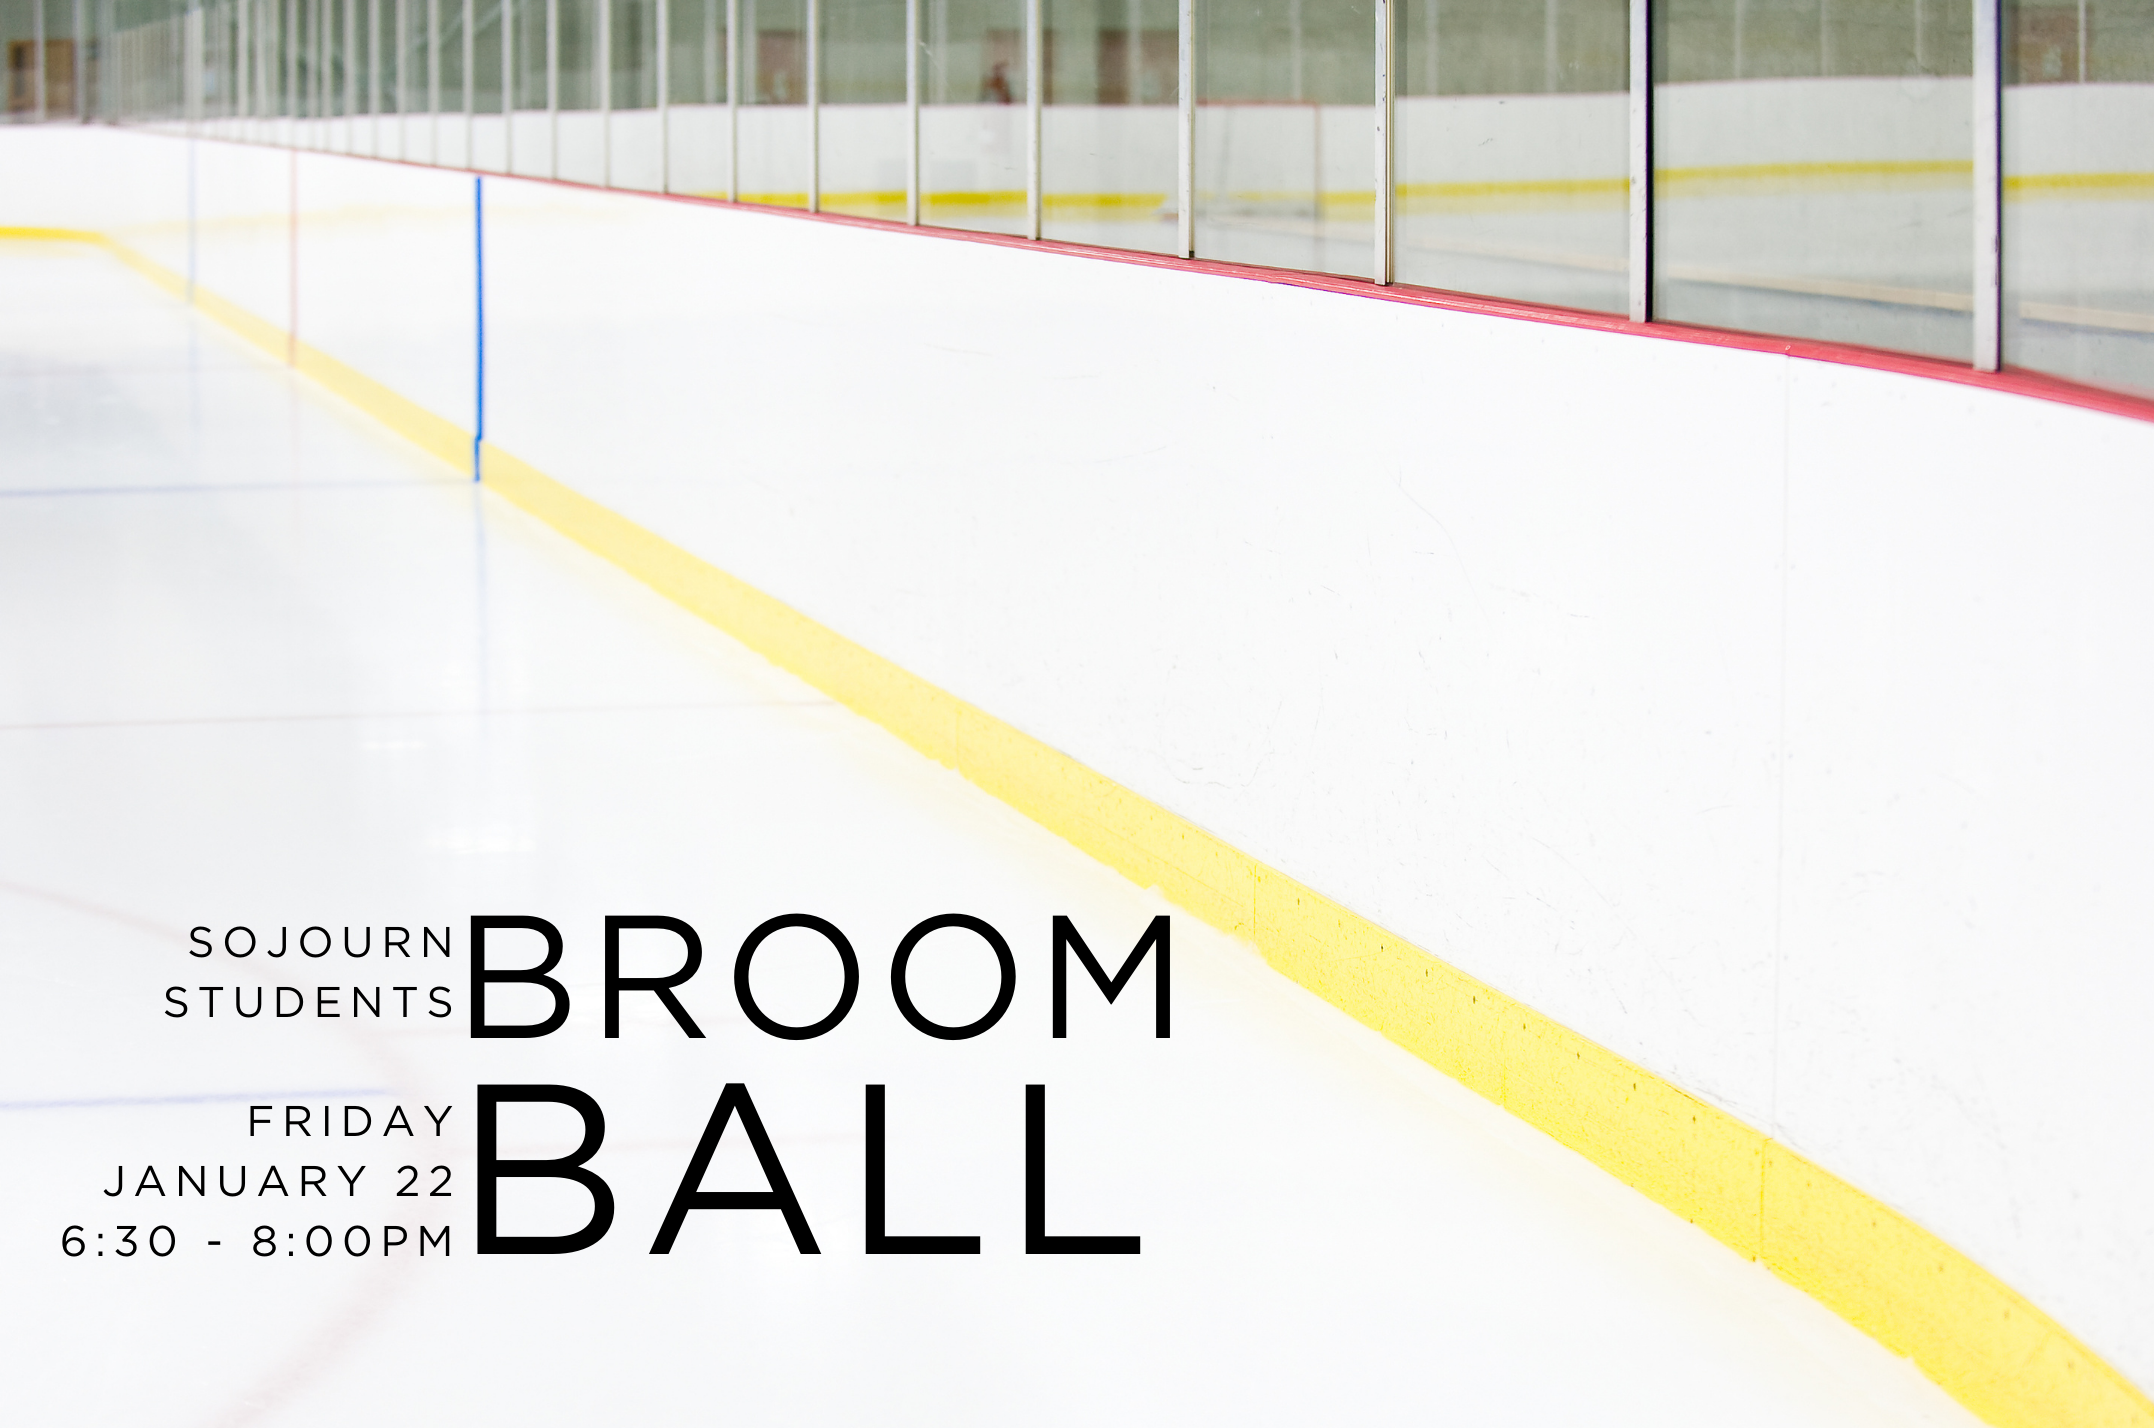 Sojourn Students - Broom Ball